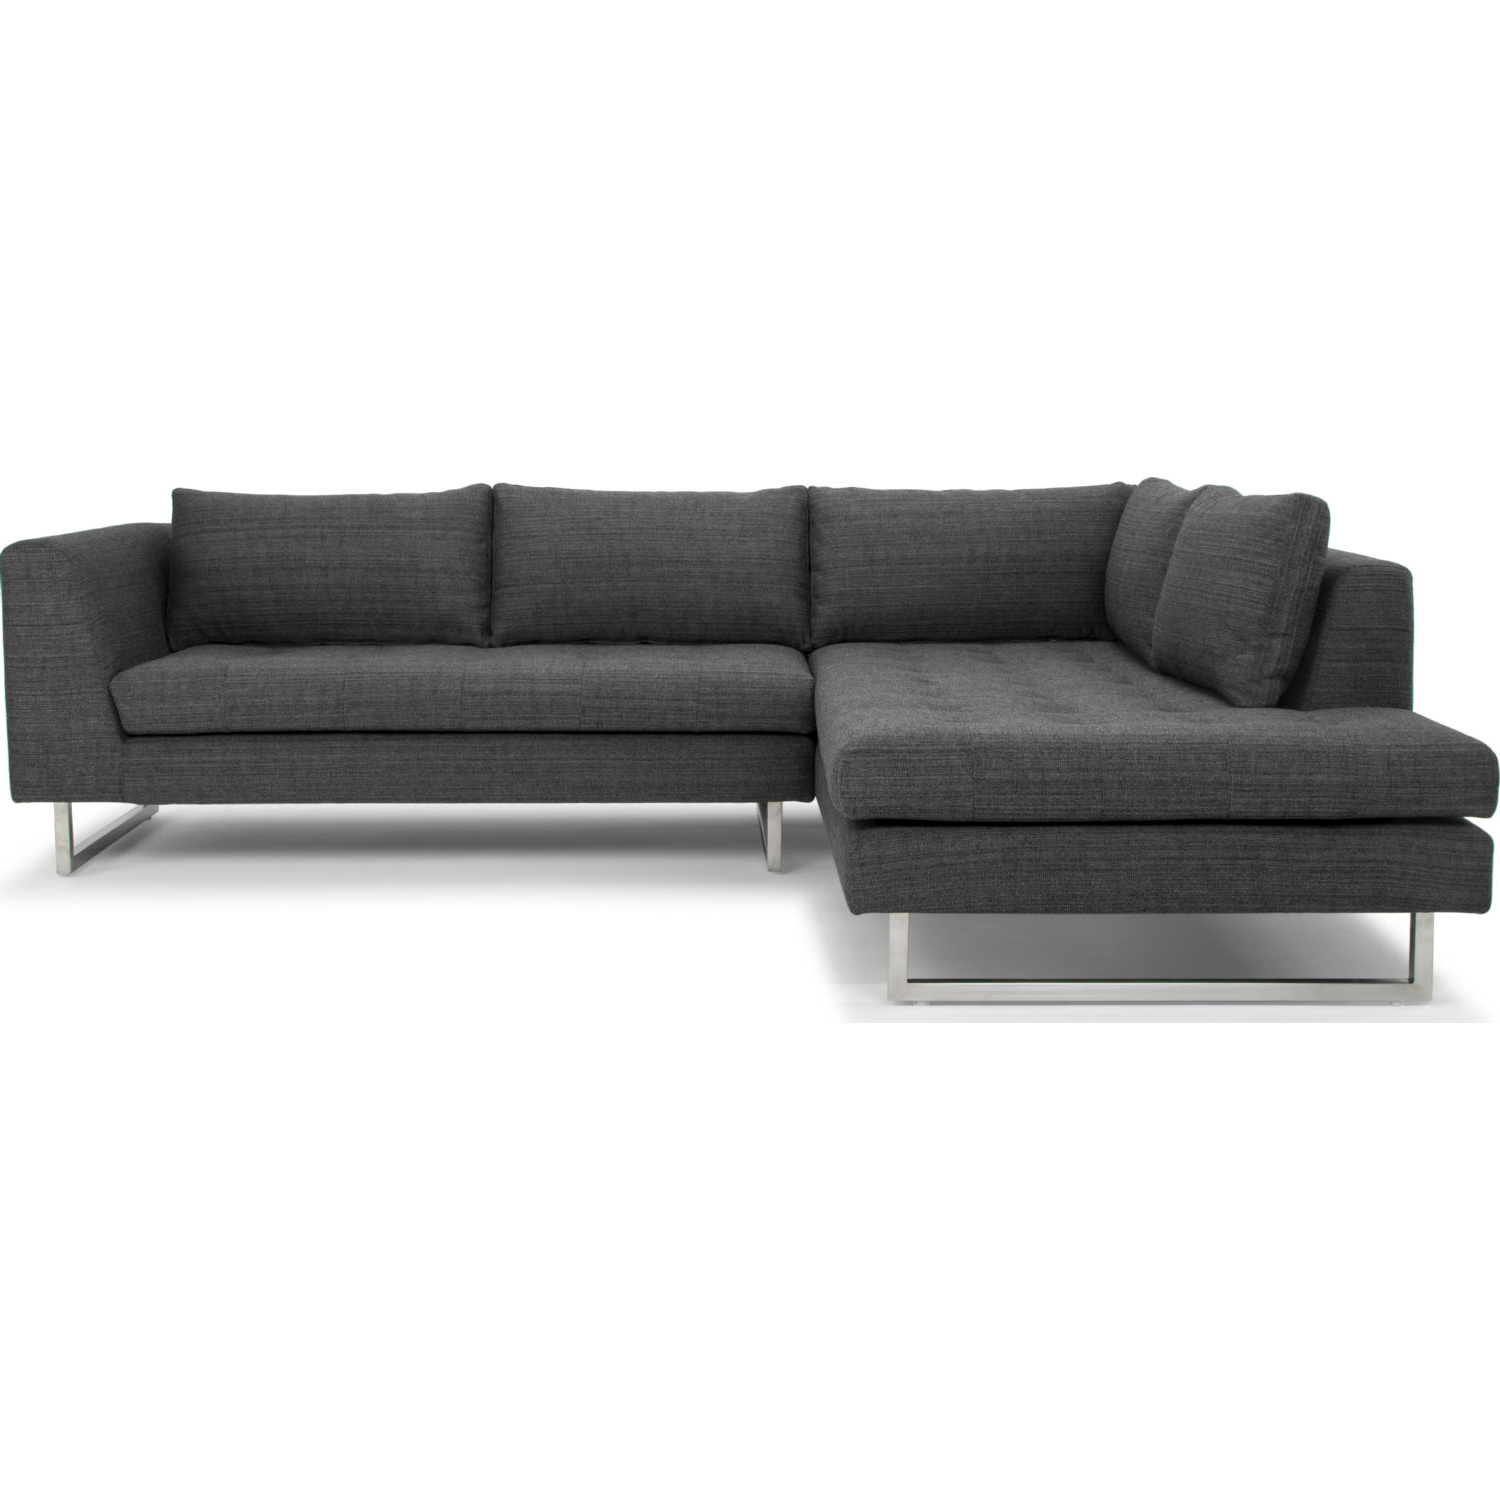 Sensational Janis Sectional Sofa W Right Hand Chaise In Dark Grey Tweed Fabric By Nuevo Modern Furniture Download Free Architecture Designs Scobabritishbridgeorg